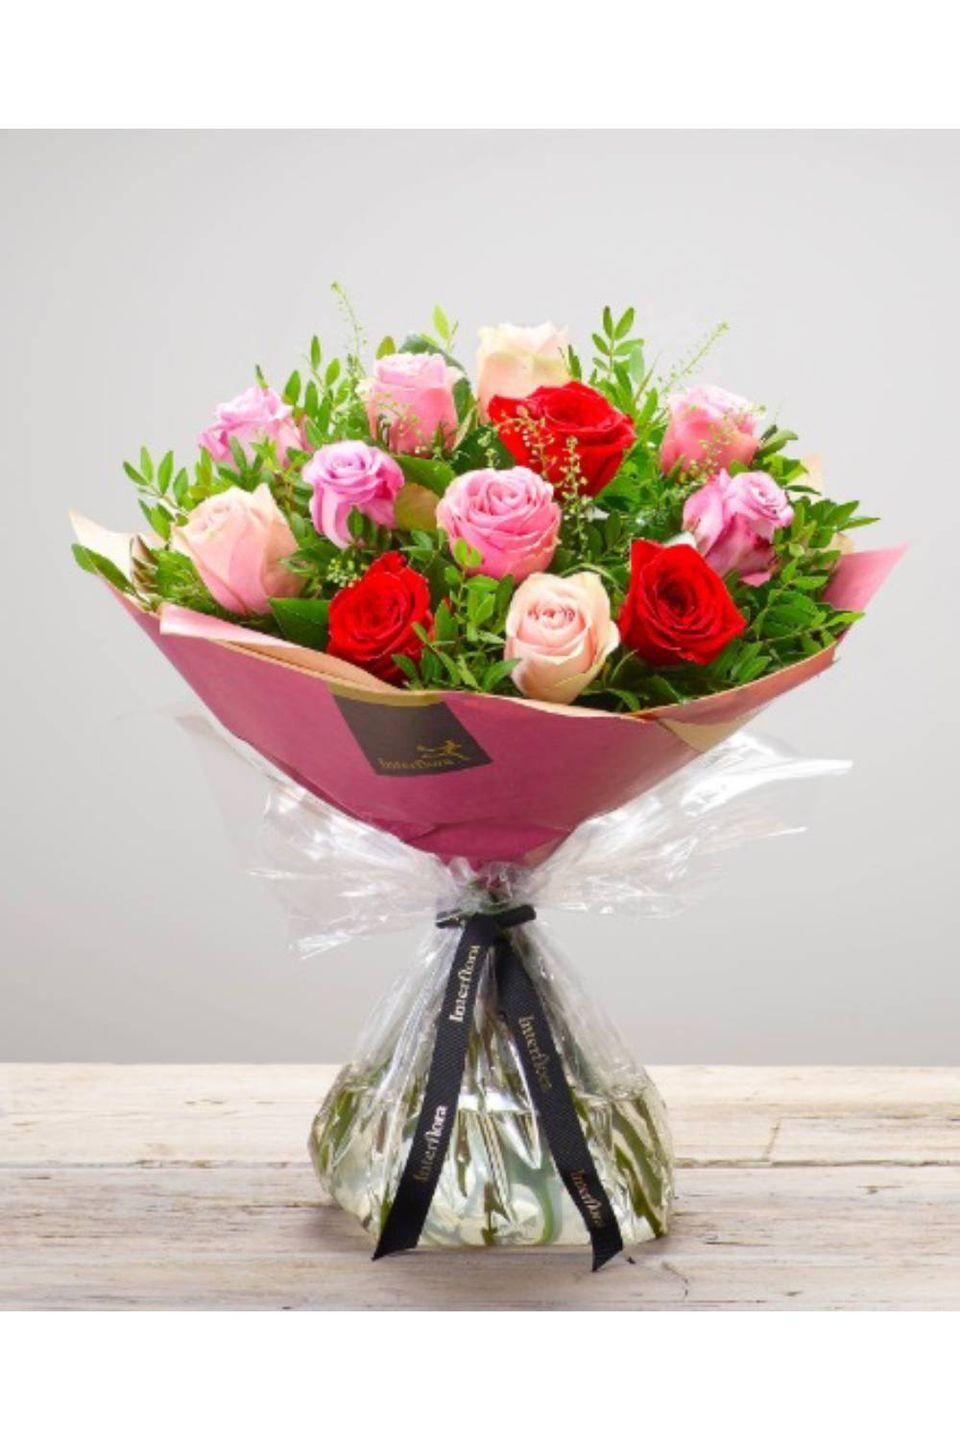 """<p><strong><a class=""""link rapid-noclick-resp"""" href=""""https://go.redirectingat.com?id=127X1599956&url=https%3A%2F%2Fwww.interflora.co.uk%2Fproduct%2Frose-medley-hand-tied%2F%3Fcategory_id%3D1000333&sref=https%3A%2F%2Fwww.cosmopolitan.com%2Fuk%2Fworklife%2Fg26812477%2Fsame-day-flower-delivery-uk%2F"""" rel=""""nofollow noopener"""" target=""""_blank"""" data-ylk=""""slk:BUY NOW"""">BUY NOW</a> Rose Medley Hand-tied, £49.00, Inteflora</strong></p><p>Interflora offer same day delivery on flowers ordered befor 3pm, Monday to Saturday. Most are arranged by a local florist and available in most areas of the UK - with upgrade and gifting options available. </p>"""